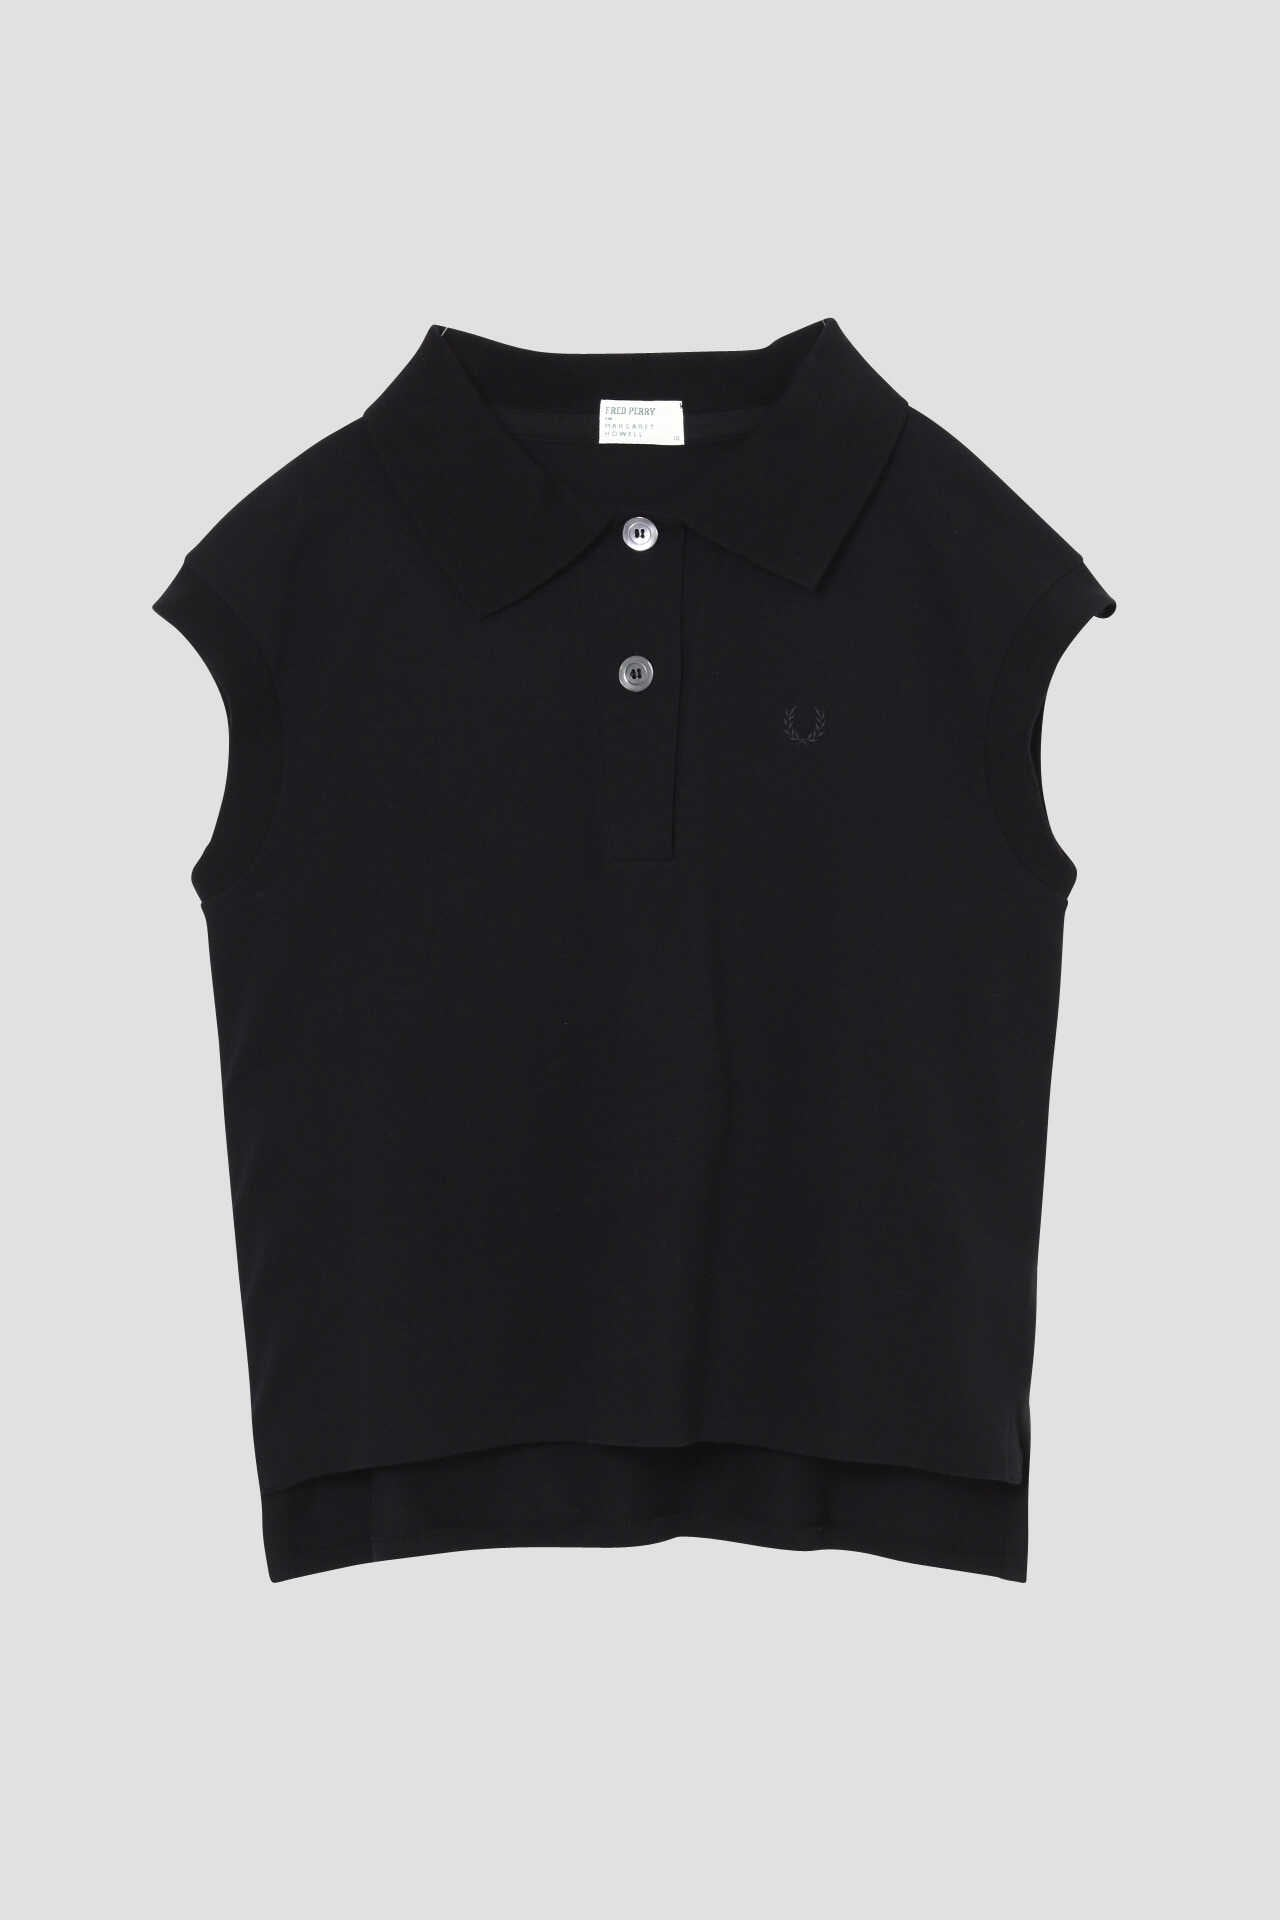 SOFT COTTON PIQUE(FRED PERRY FOR MARGARET HOWELL)5